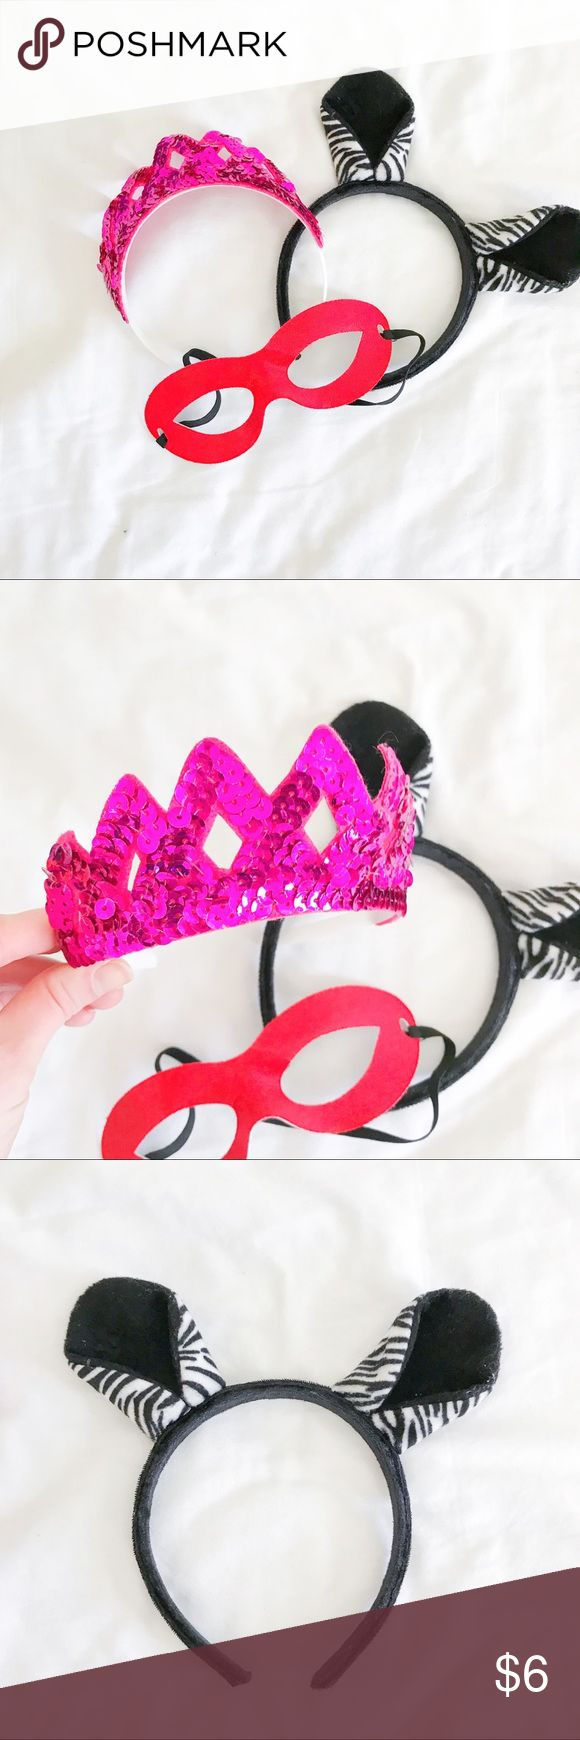 🔴5 FOR $25 Kids Dress Up Bundle Zebra ears, red superhero eye mask, and pink sequin crown all EUC! Costumes